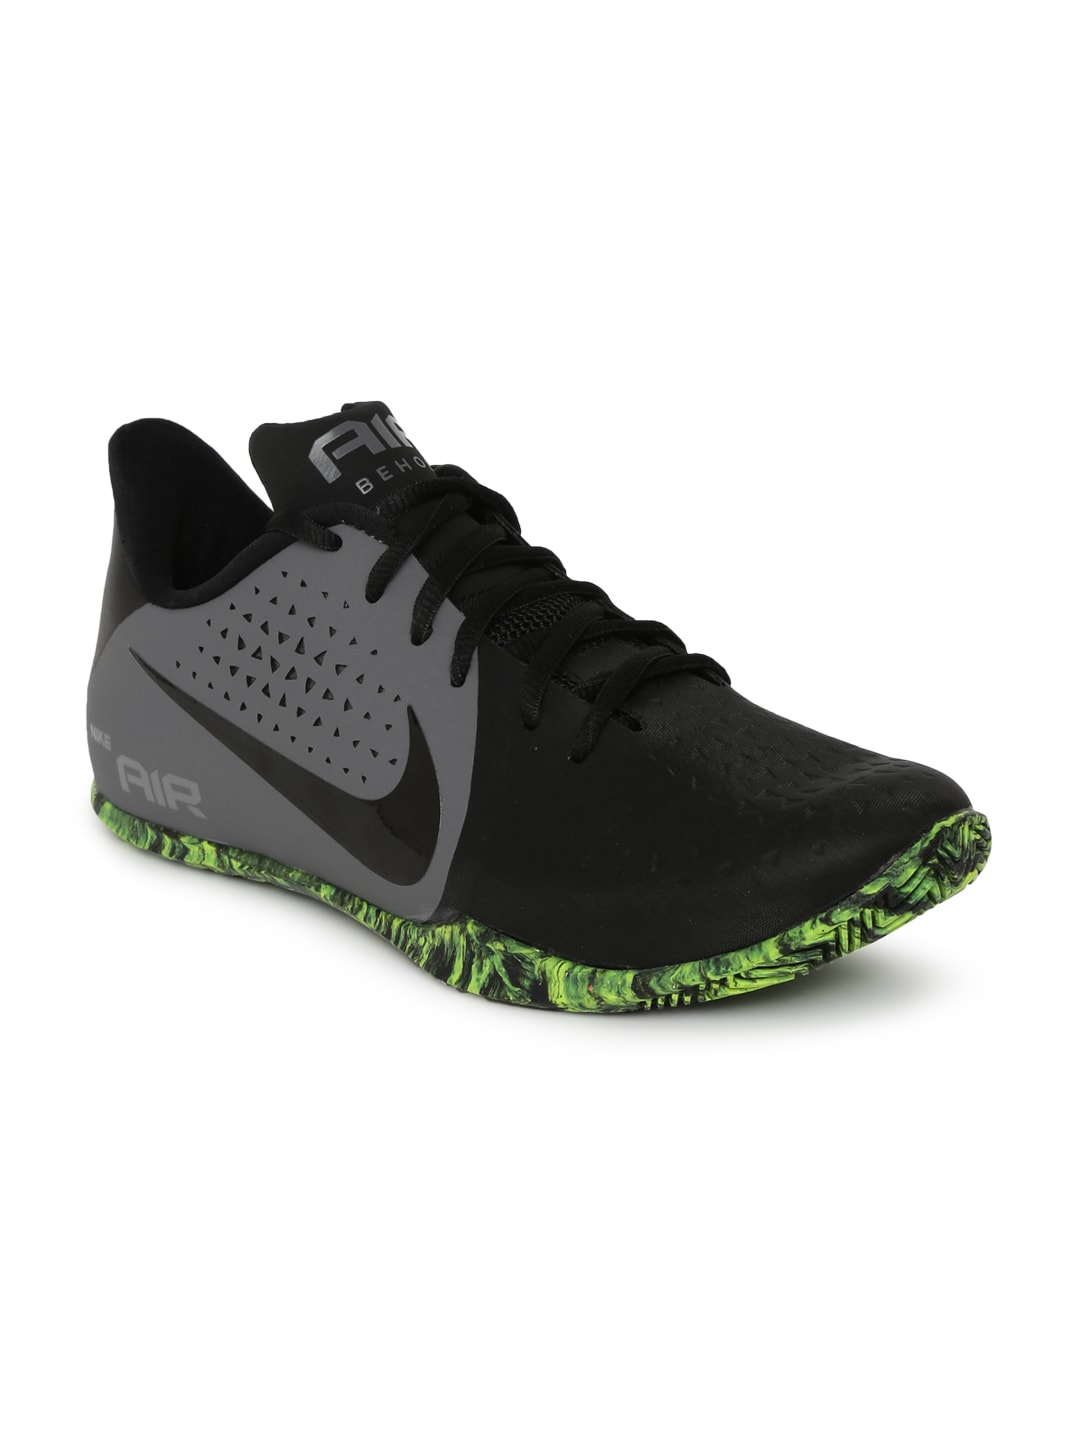 san francisco d0e16 7a2d3 Nike Basketball Shoes   Buy Nike Basketball Shoes Online in India at Best  Price